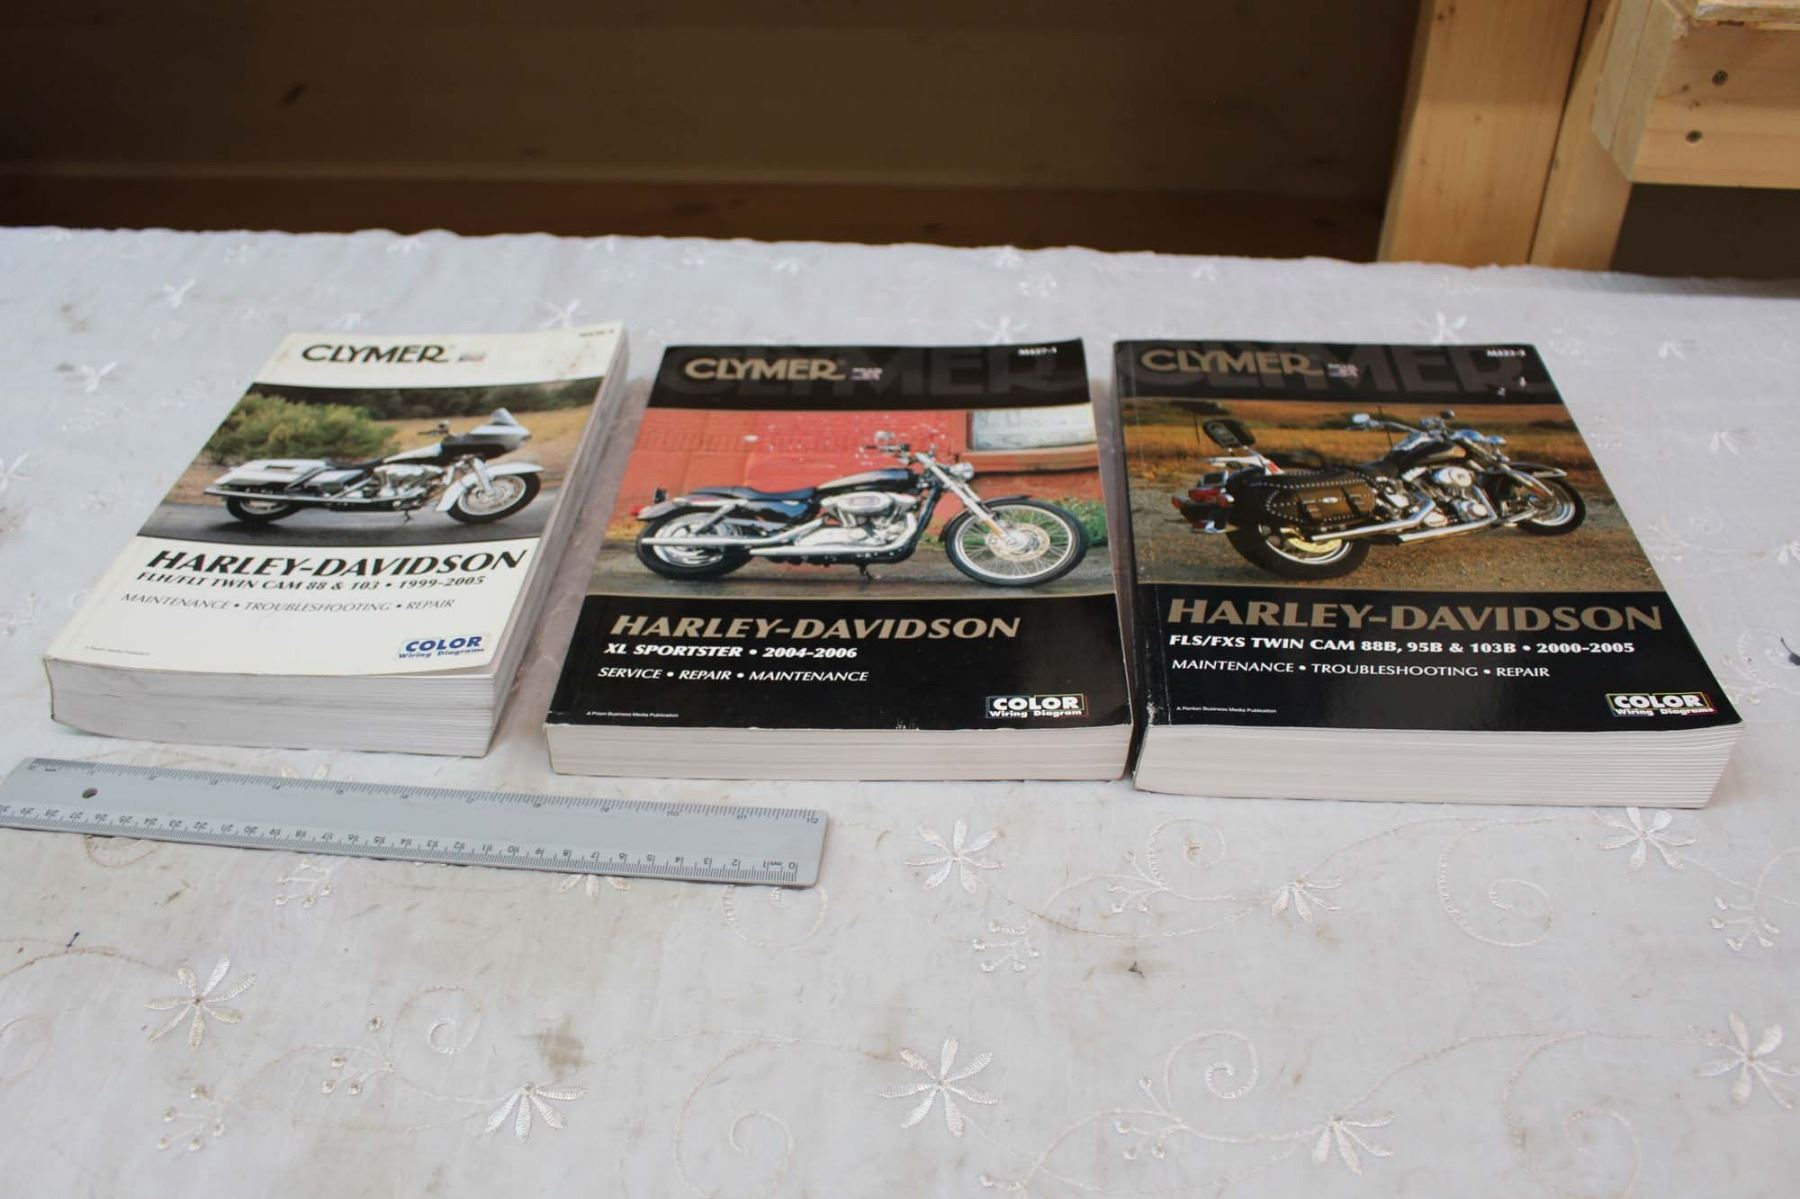 clymer manuals any good